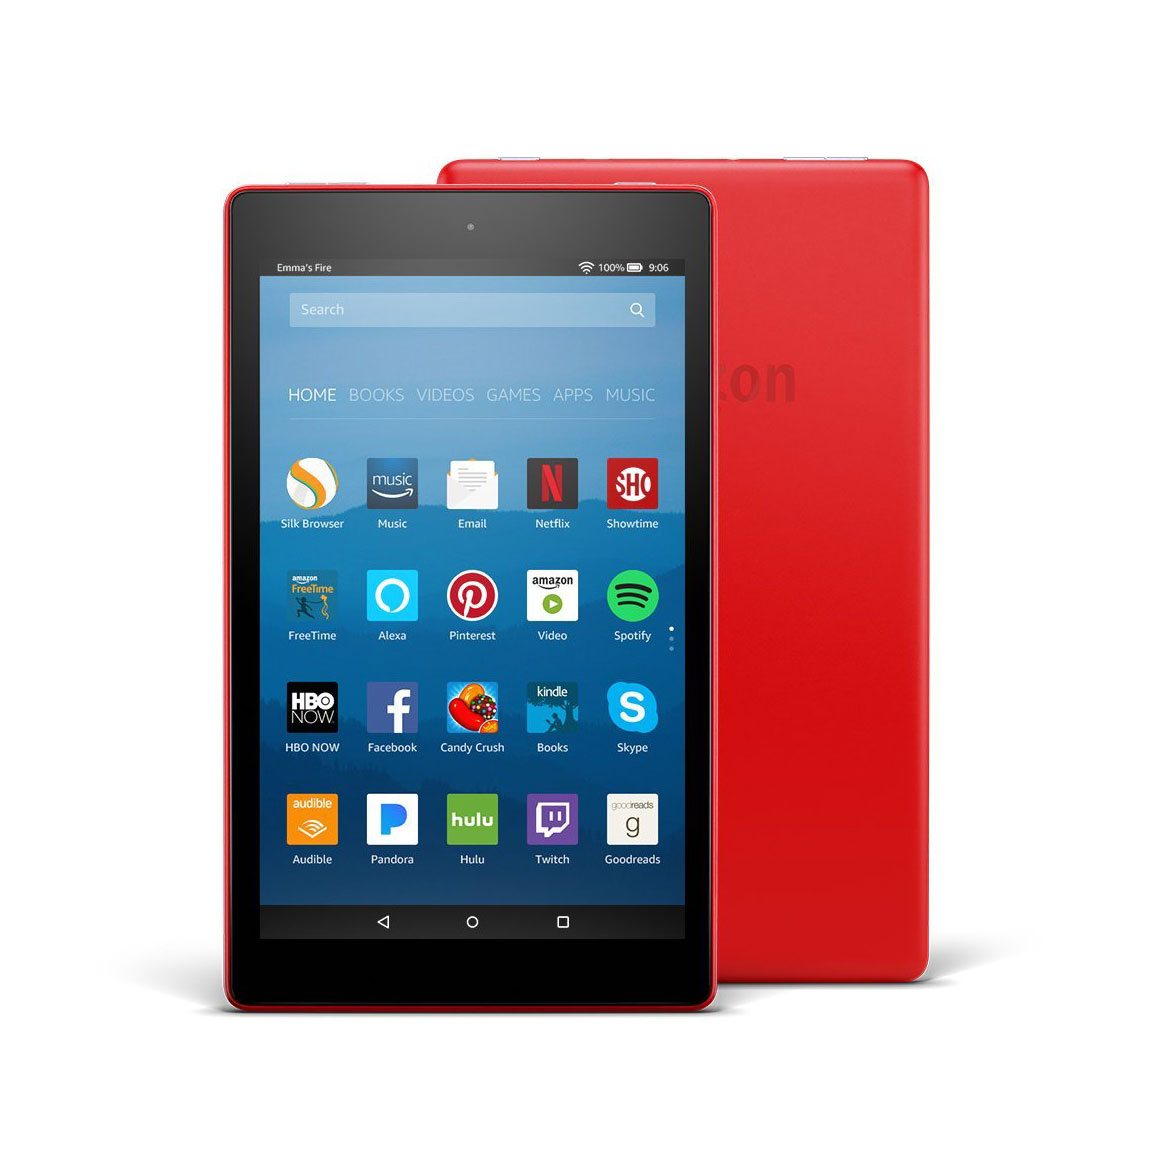 Amazon Fire HD 8 Tablet with Alexa